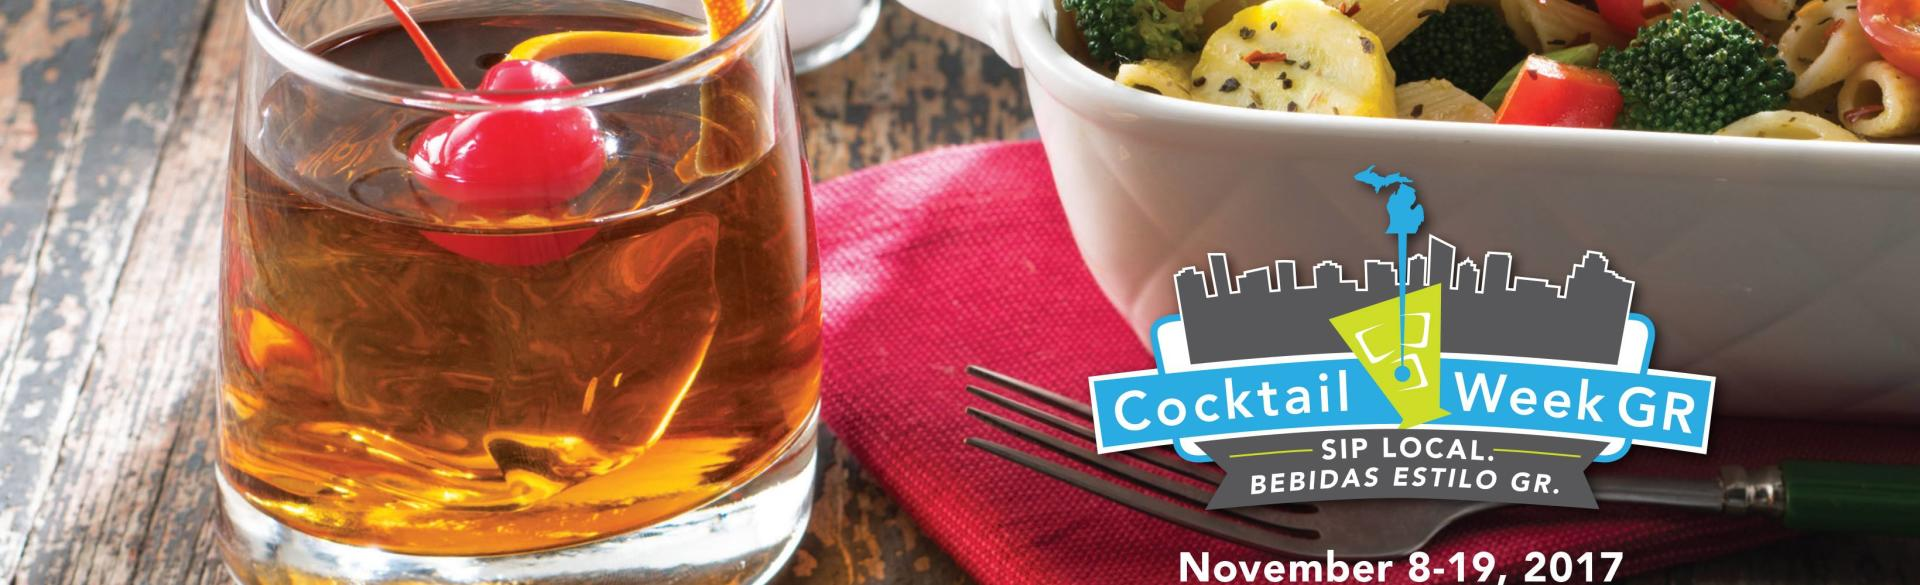 Cocktail Week Grand Rapids - Nov 8-19